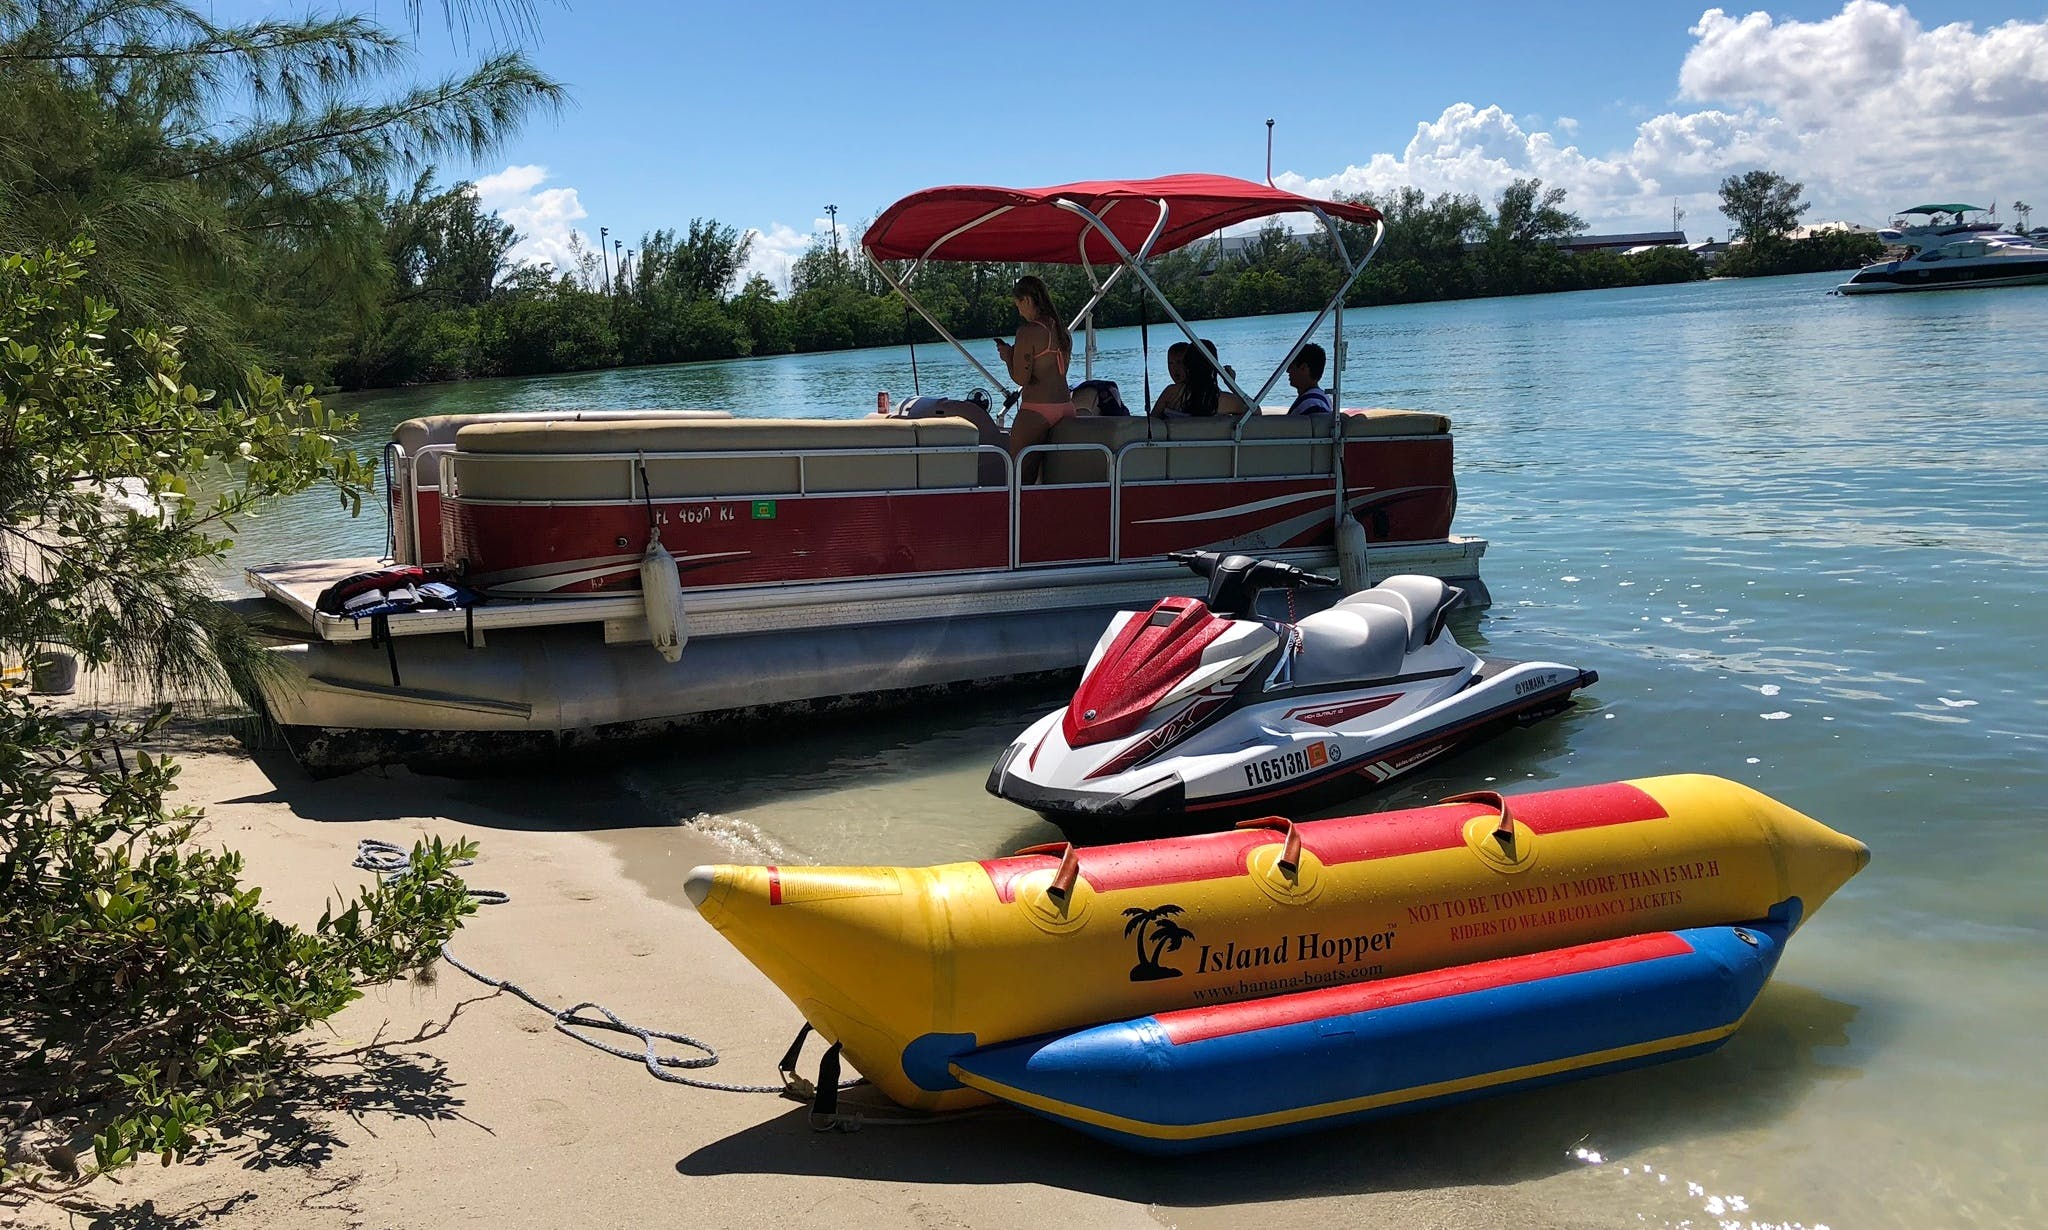 Pontoon rental in Miami Beach with Bimini Cover for Shade